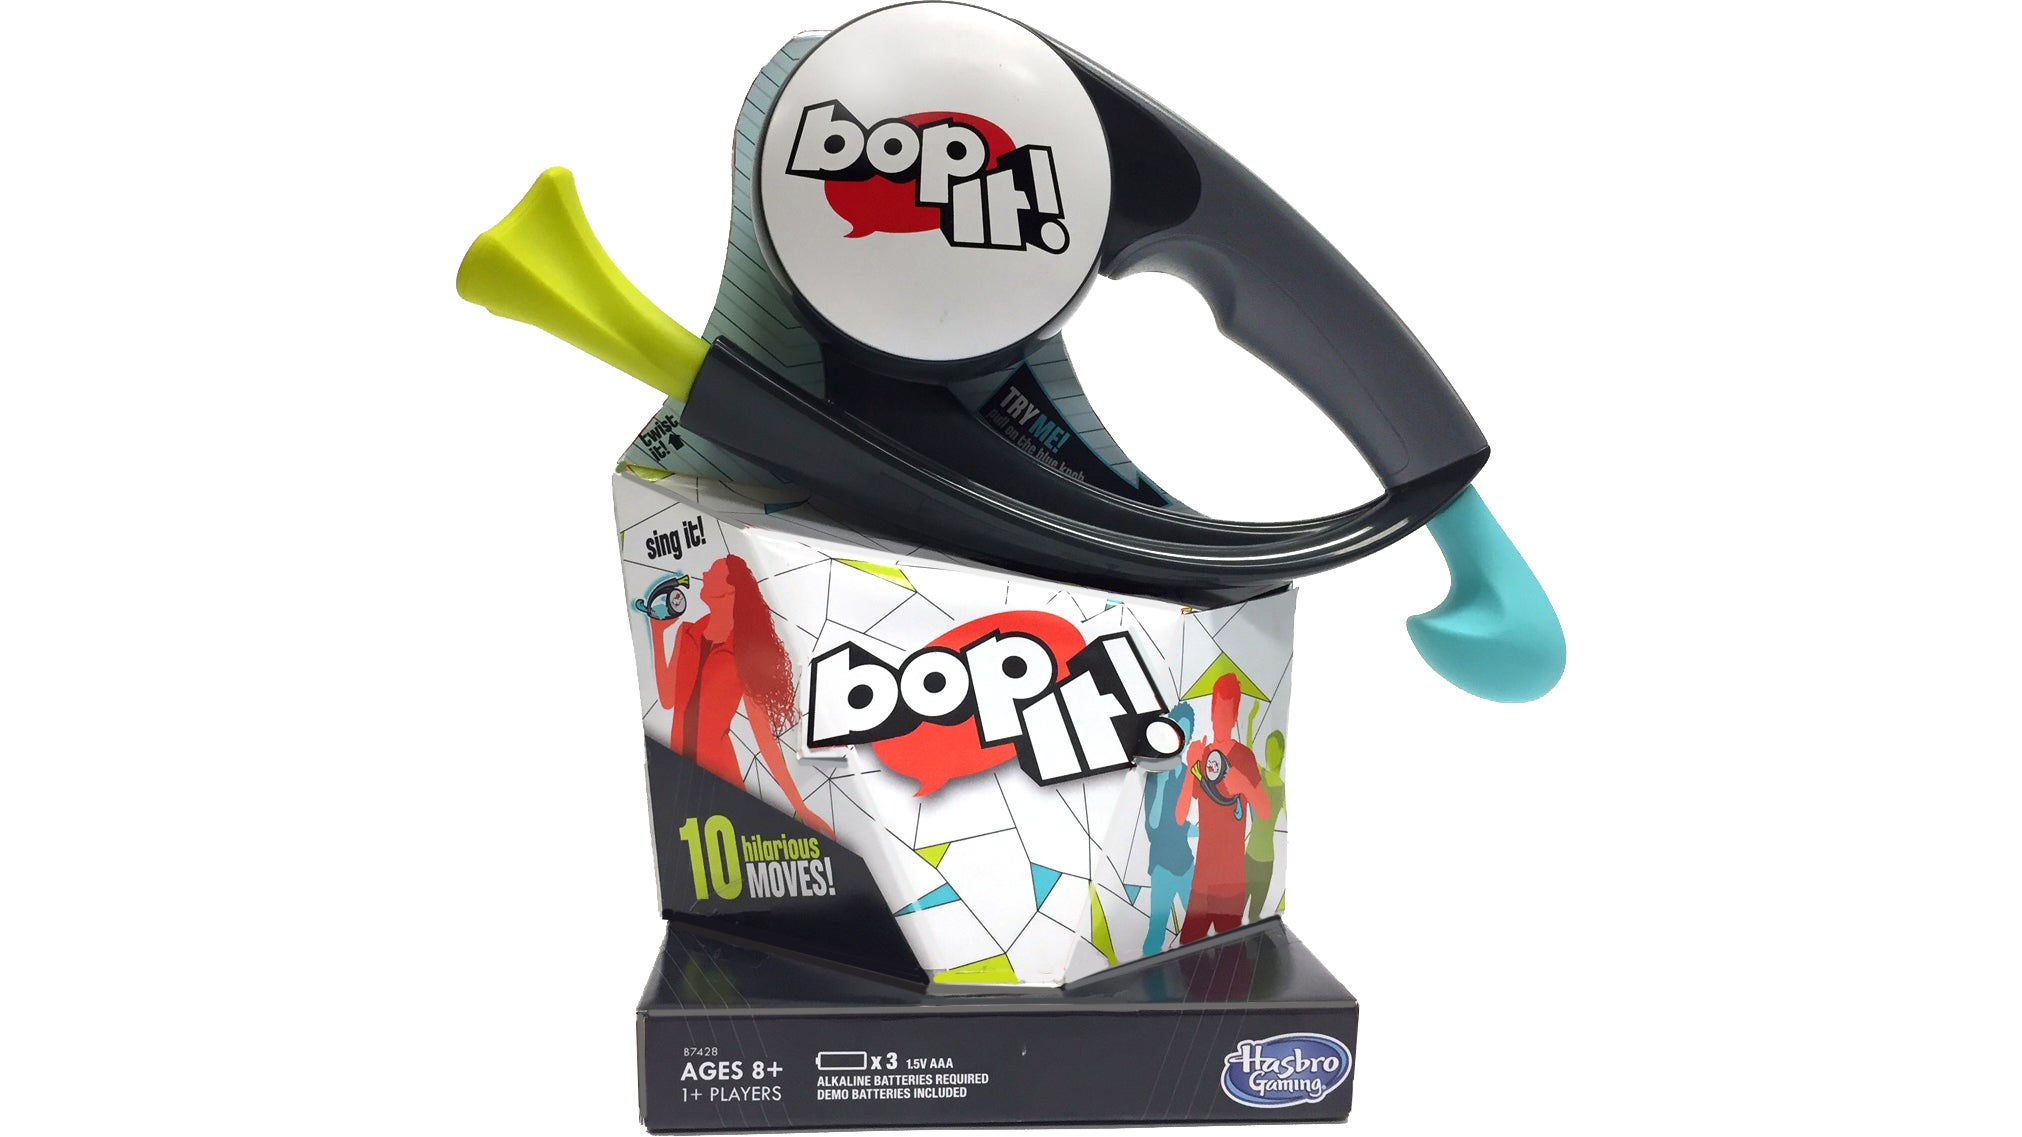 The New BOP IT Adds a Motion Sensor So Players Have to Perform Actions Too